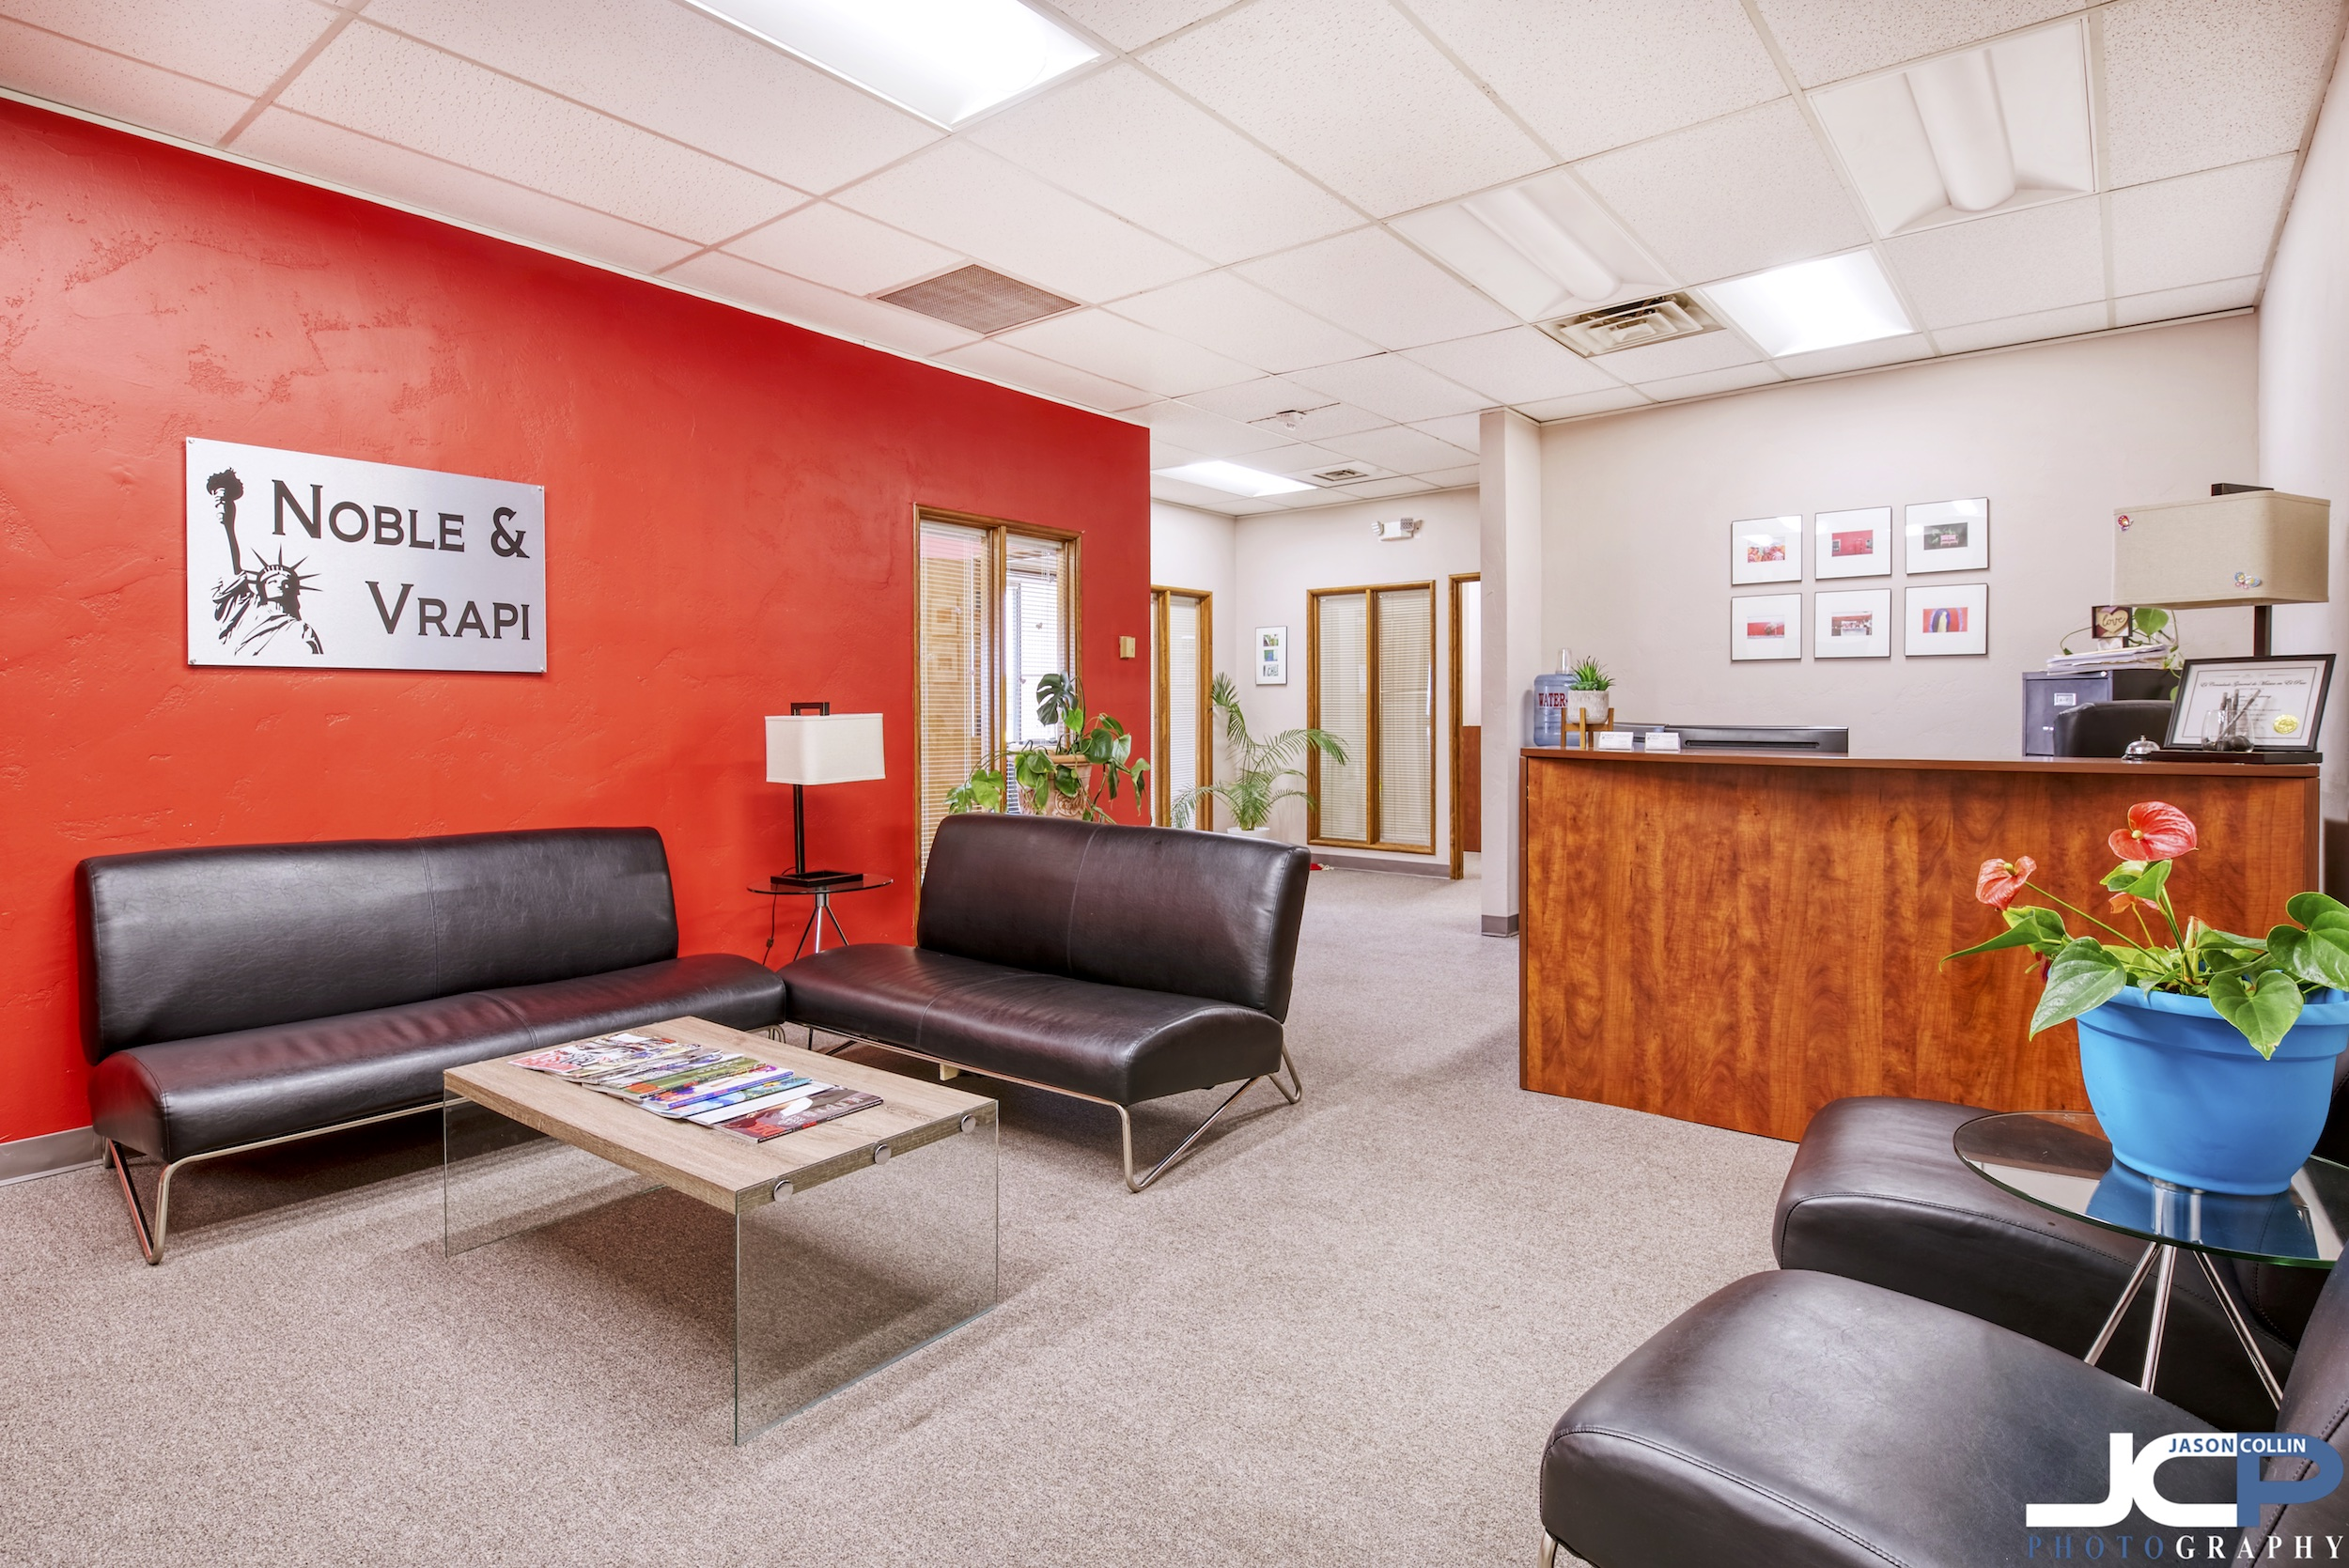 Commercial interior photography of a Las Cruces law office